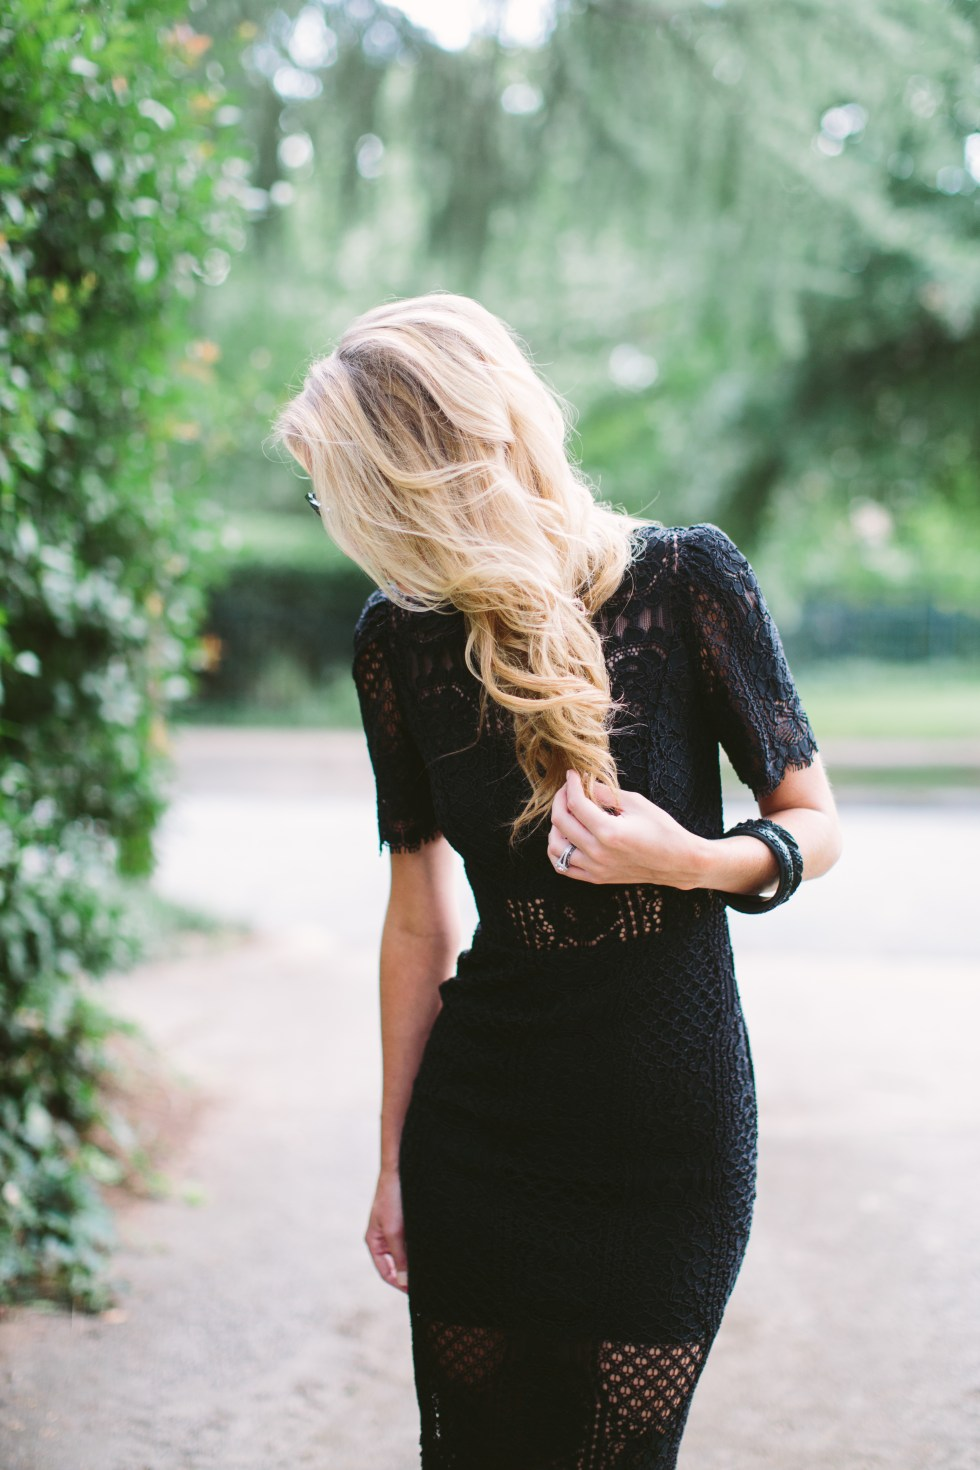 Alexis black lace dress on paularallis.com